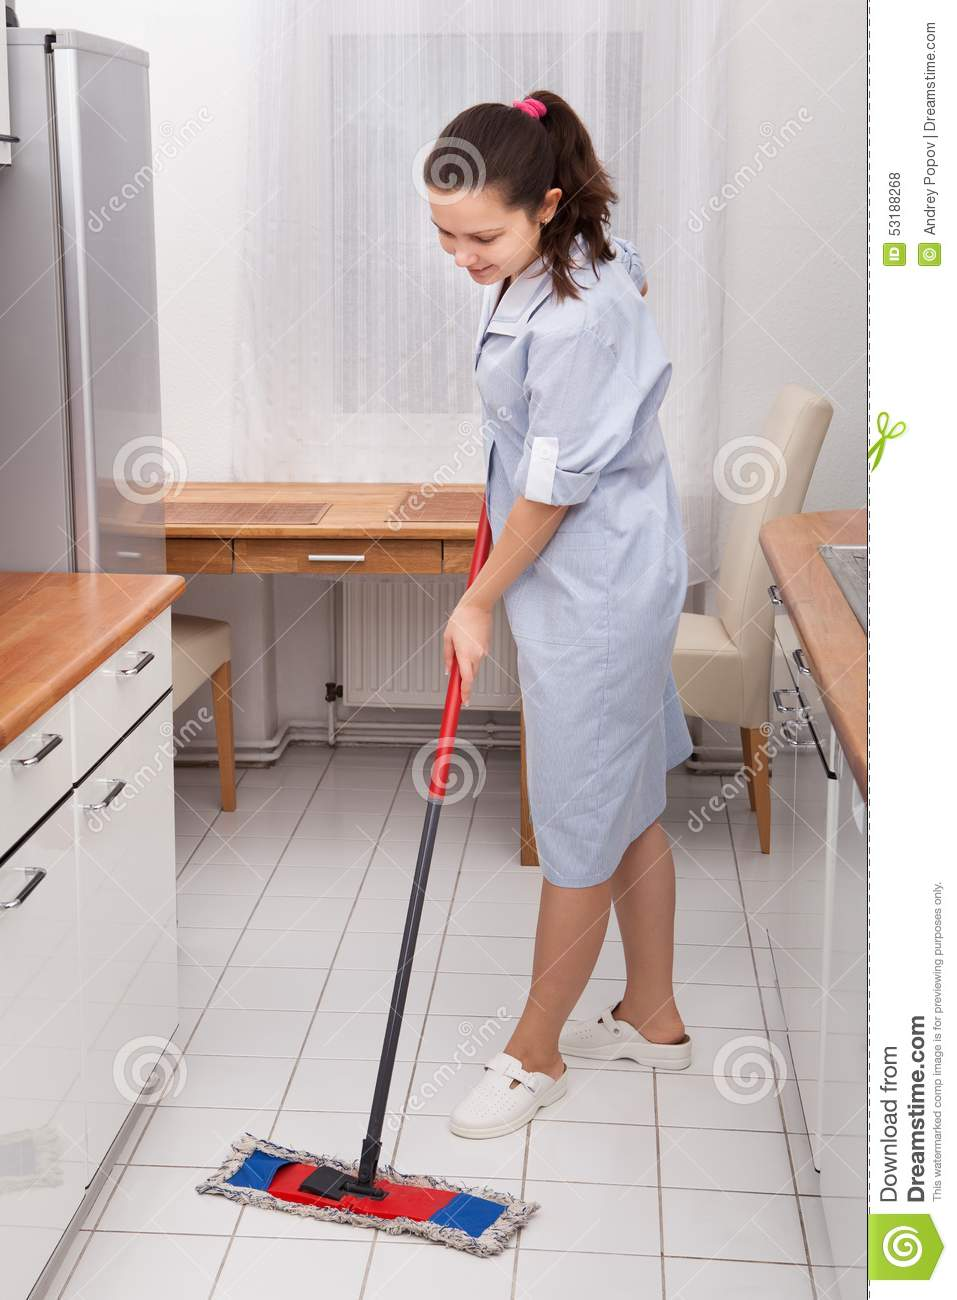 Mopping Kitchen Floor Young Maid Cleaning Kitchen Floor Stock Photo Image 53188268